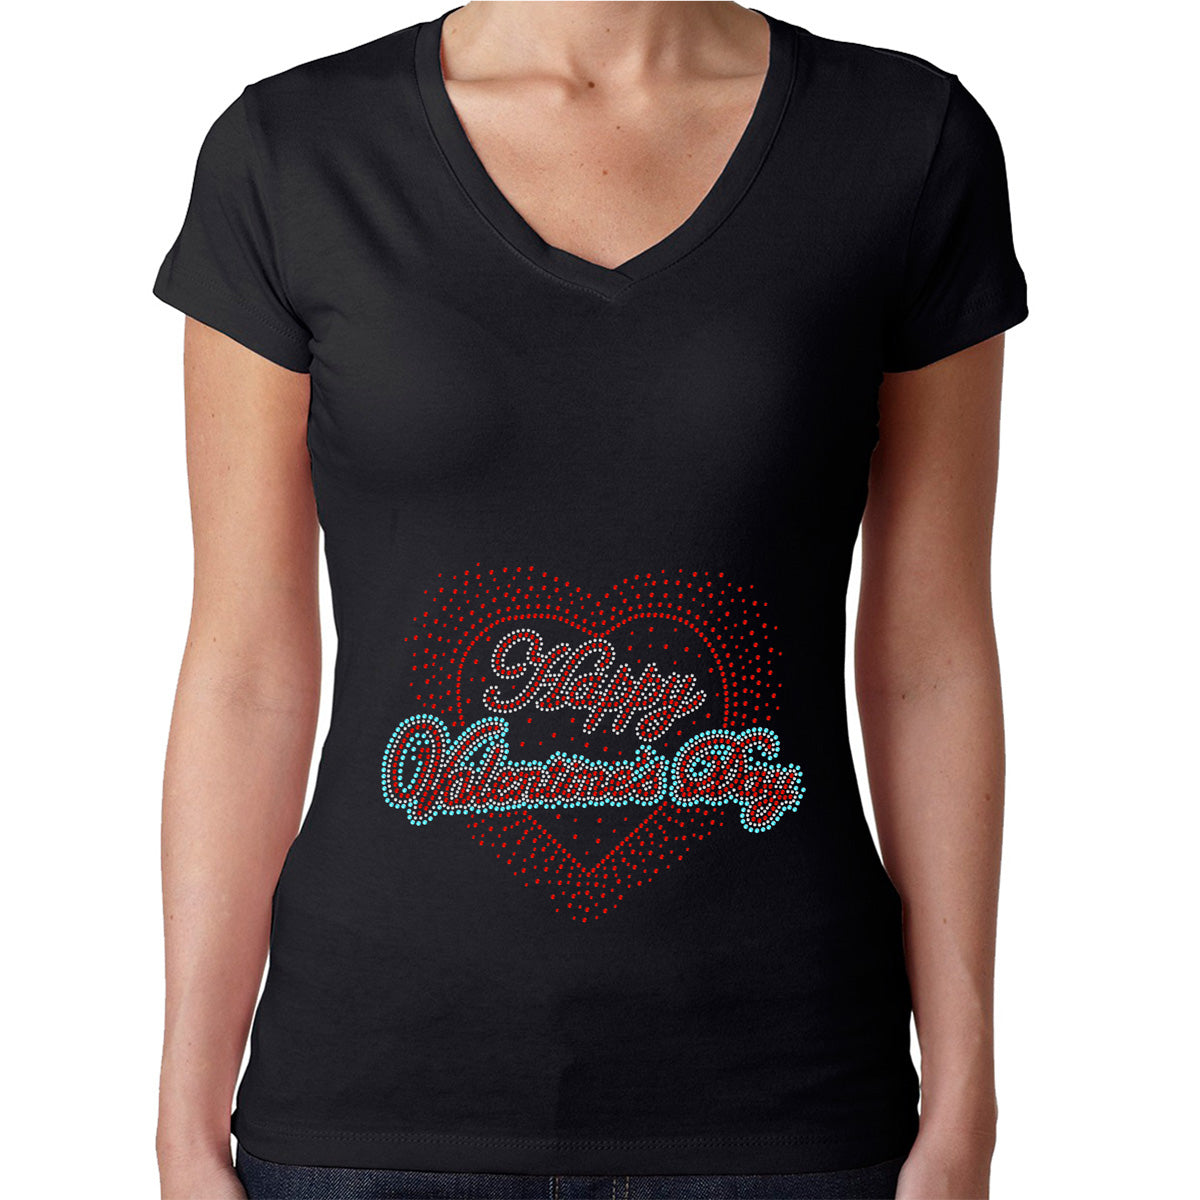 Womens T-Shirt Rhinestone Bling Black Fitted Tee Happy Valentines Day Love Heart